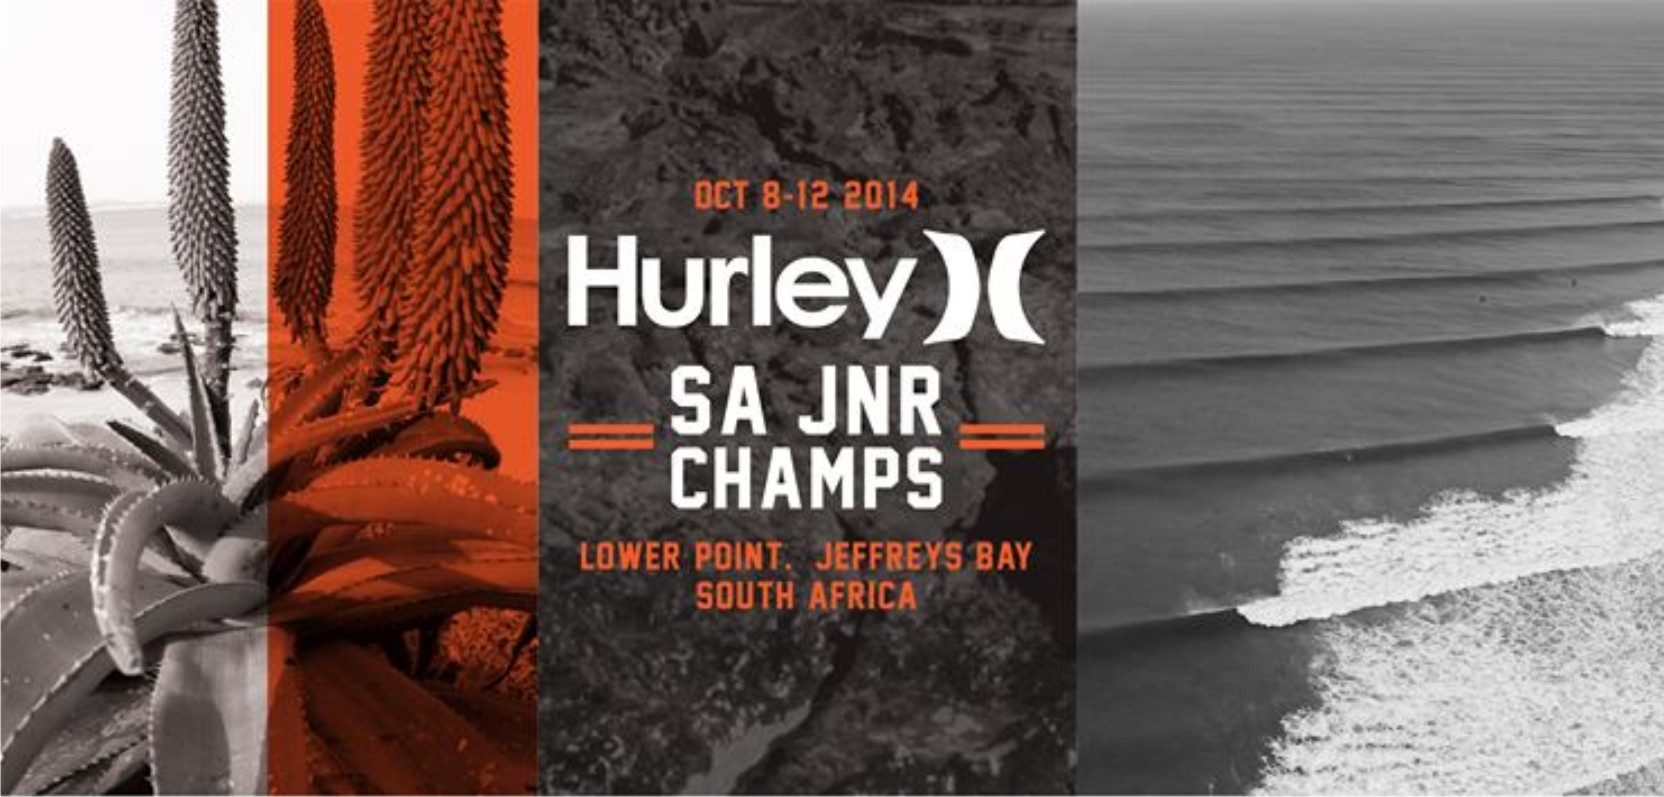 The Hurley SA Junior Champs are underway in Jeffreys Bay